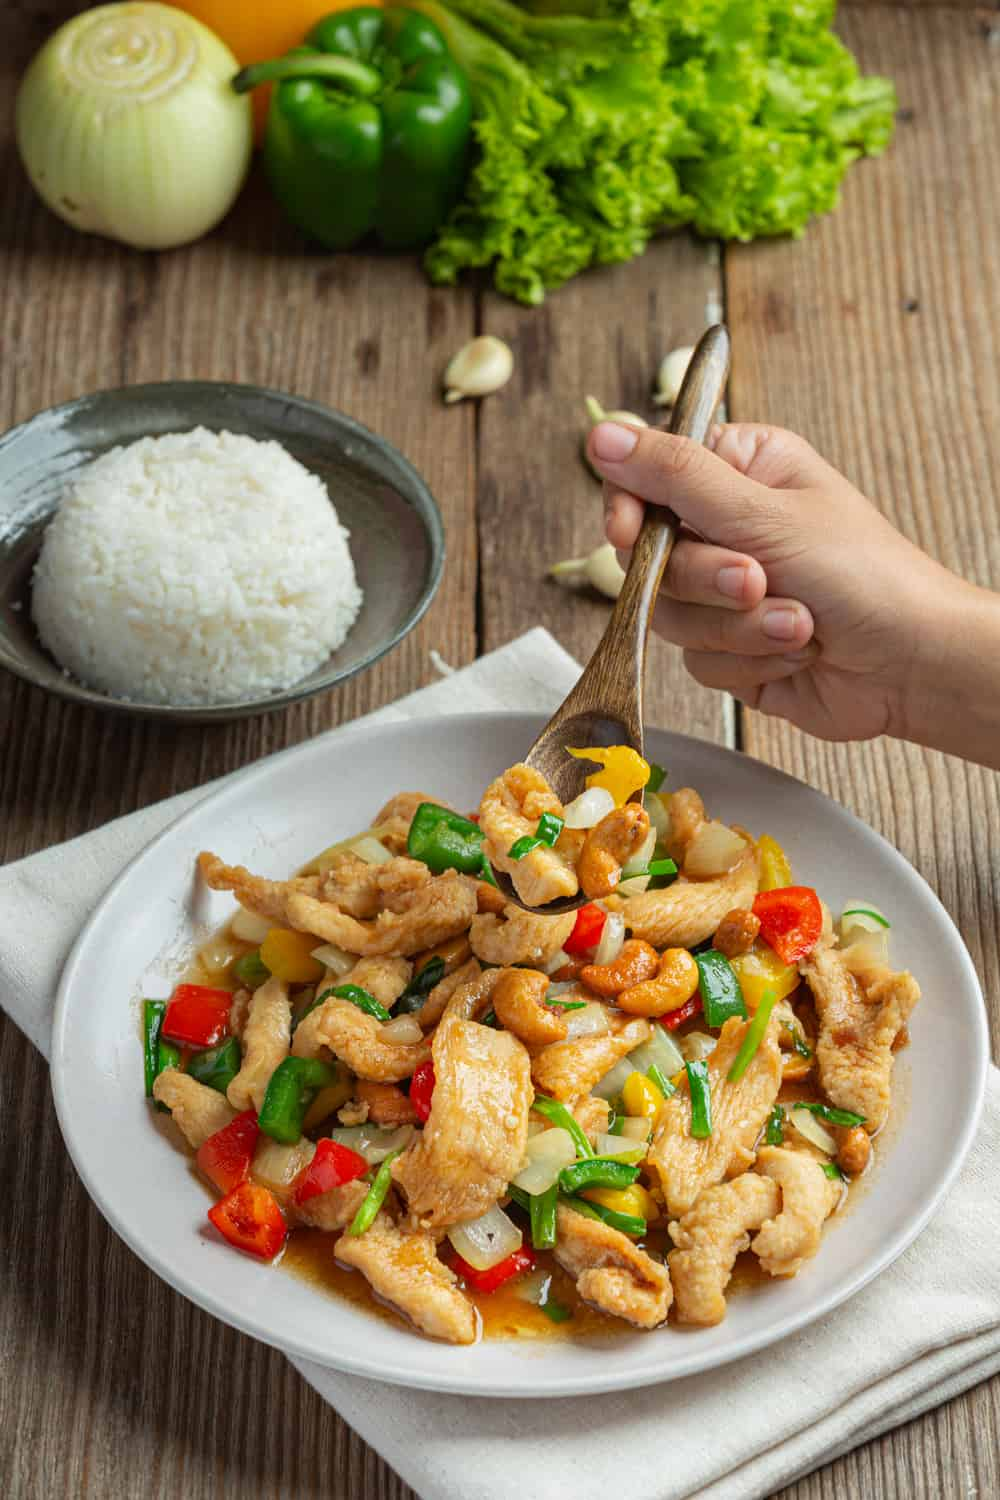 Thai Street Food Gai Pad Met Ma Muang (Fried Chicken with Cashew Nuts)